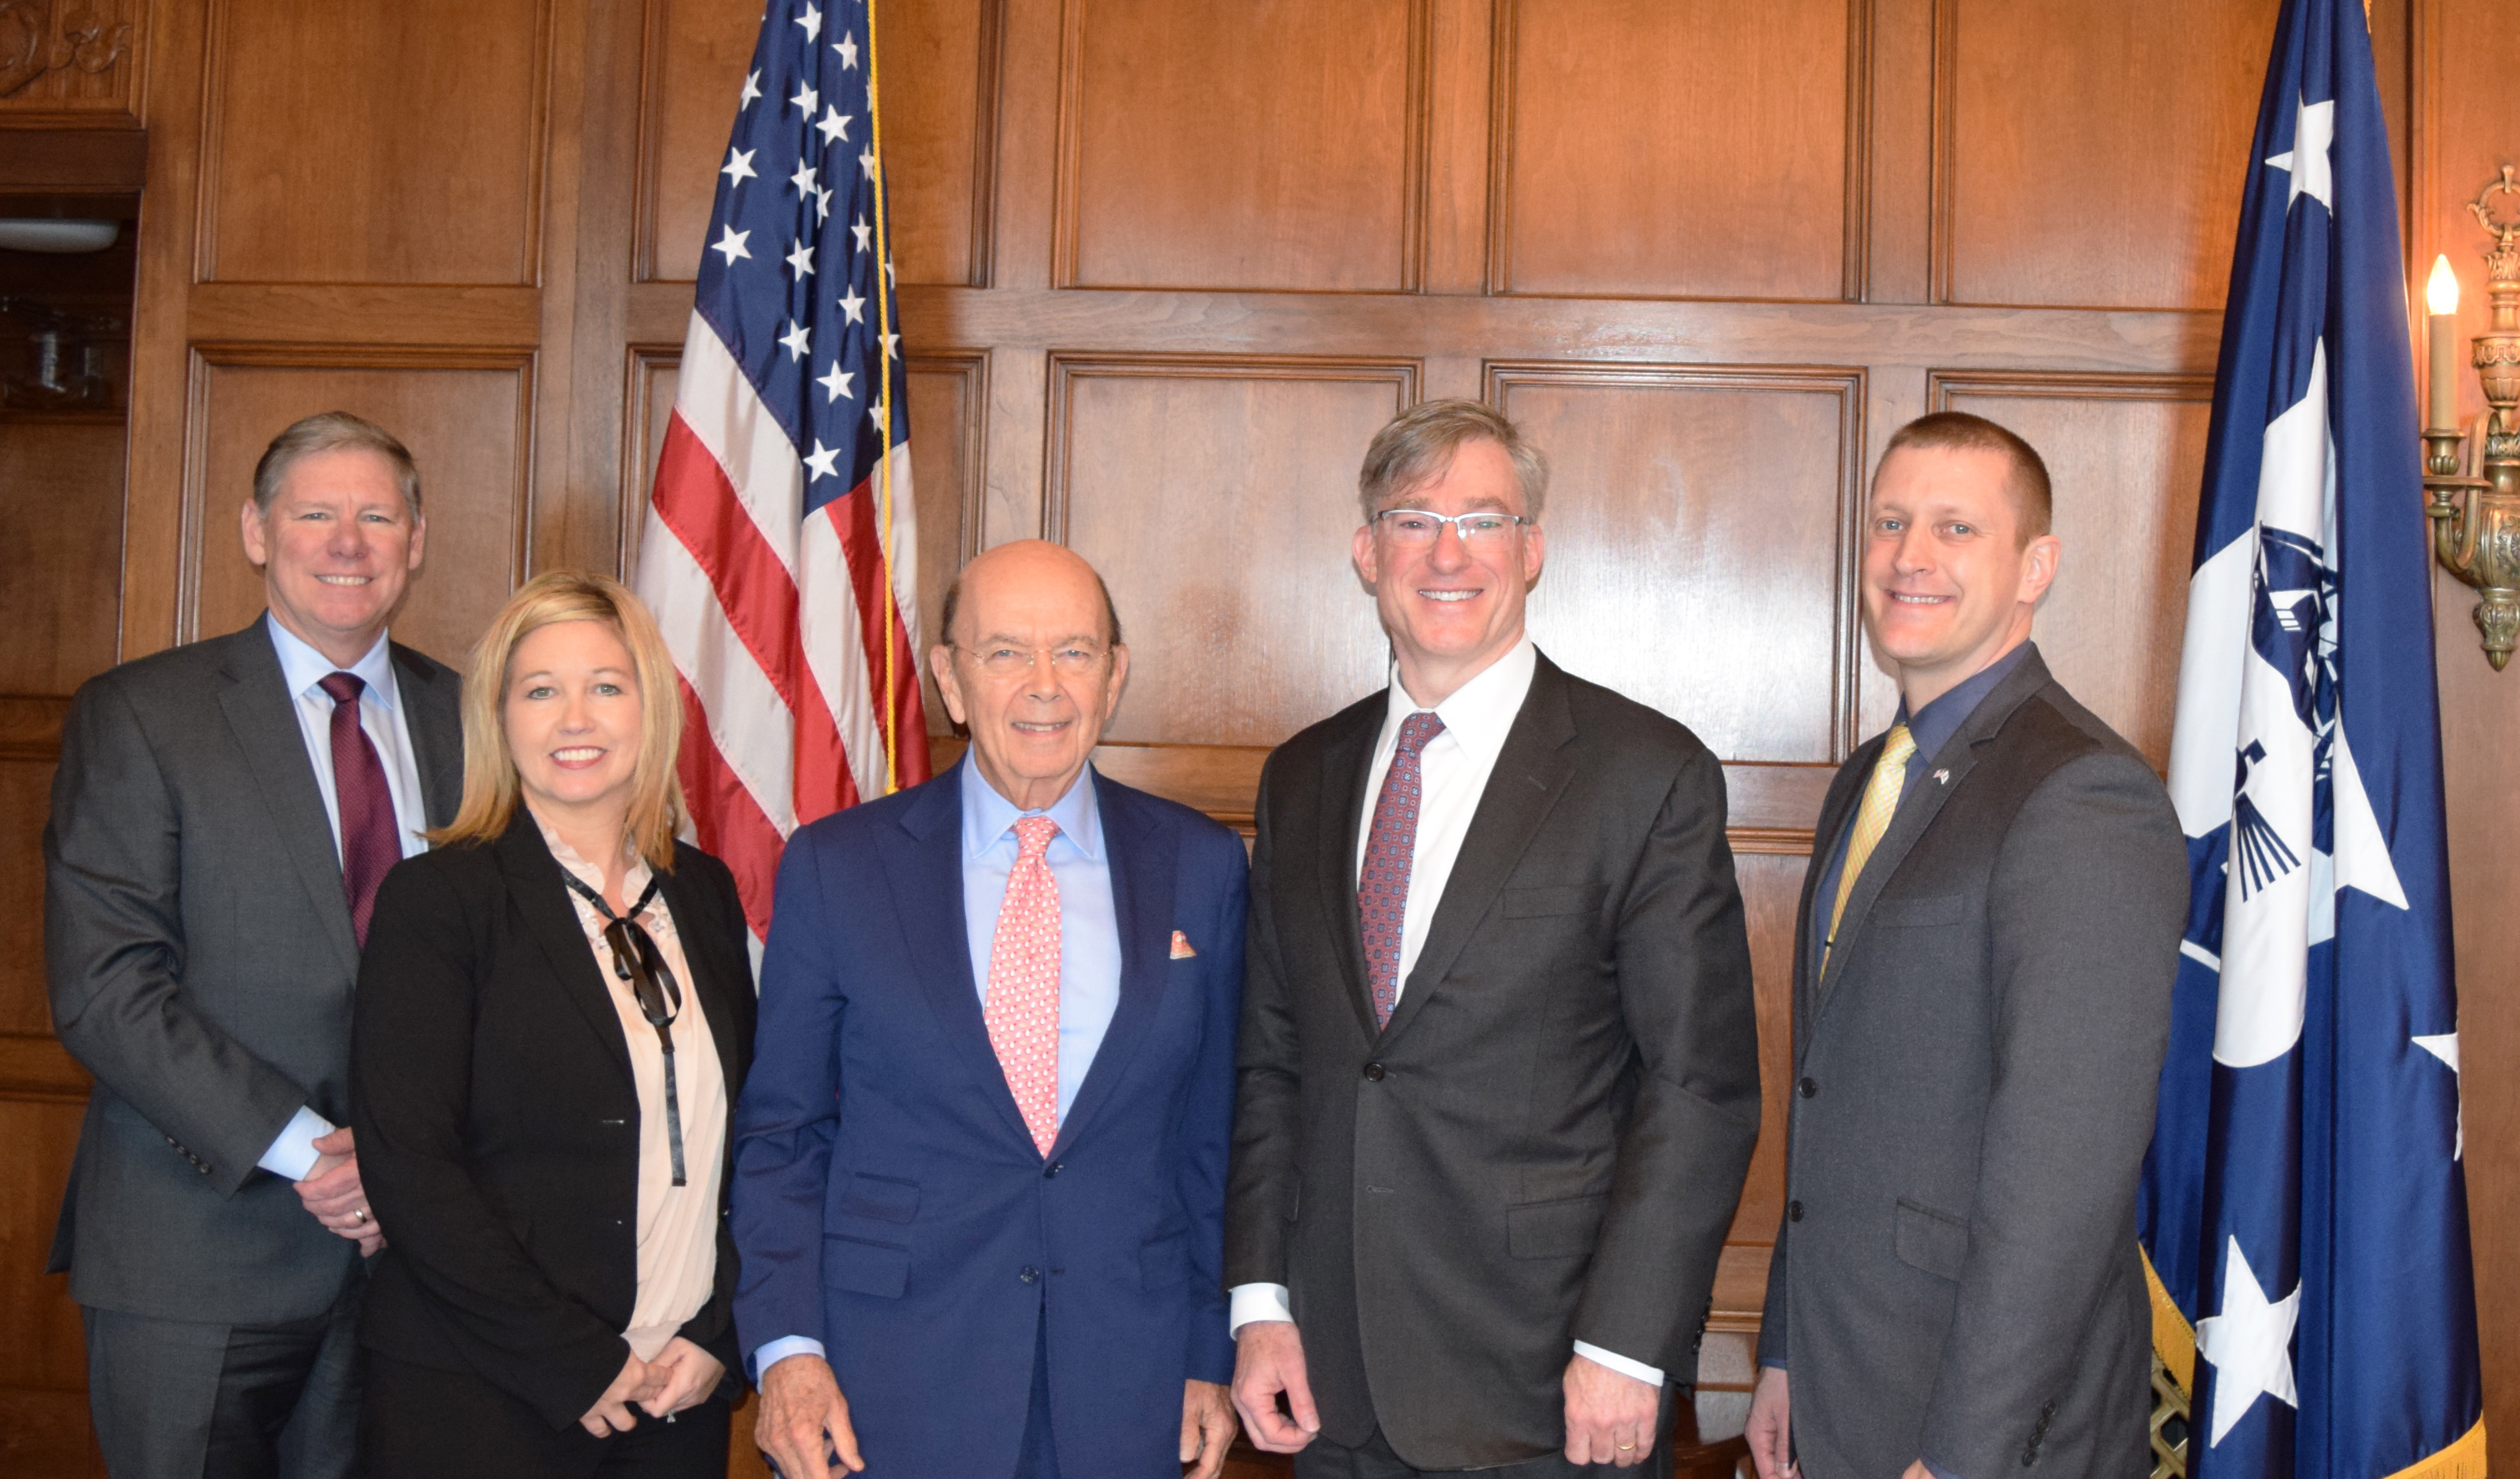 Rockwell Automation CEO Blake Moret and Commerce Secretary Wilbur Ross Jr. discuss a variety of topics related to advanced manufacturing. In this photo (left to right): Bruce Quinn, vice president, Government Affairs, Rockwell Automation; Rachael Conrad, regional vice president, Rockwell Automation; Wilbur Ross Jr., commerce secretary; Blake Moret, president and CEO, Rockwell Automation; and Patrick Leon, buyer, Rockwell Automation. (Photo: Business Wire)